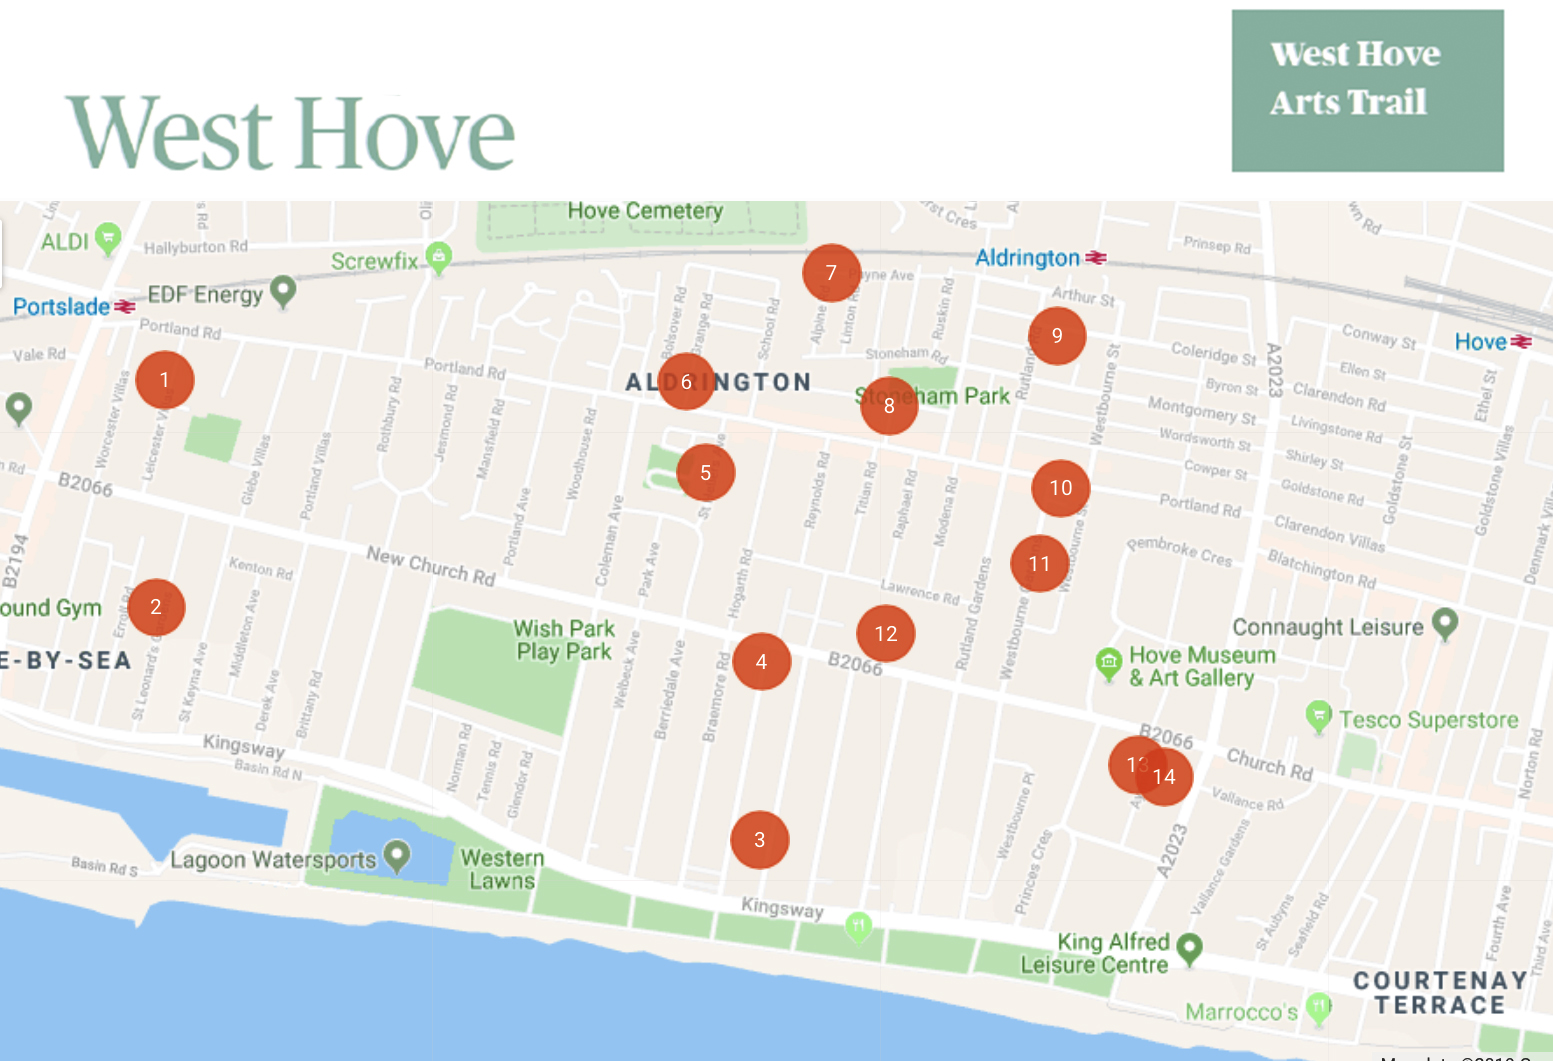 West Hove Art Trail